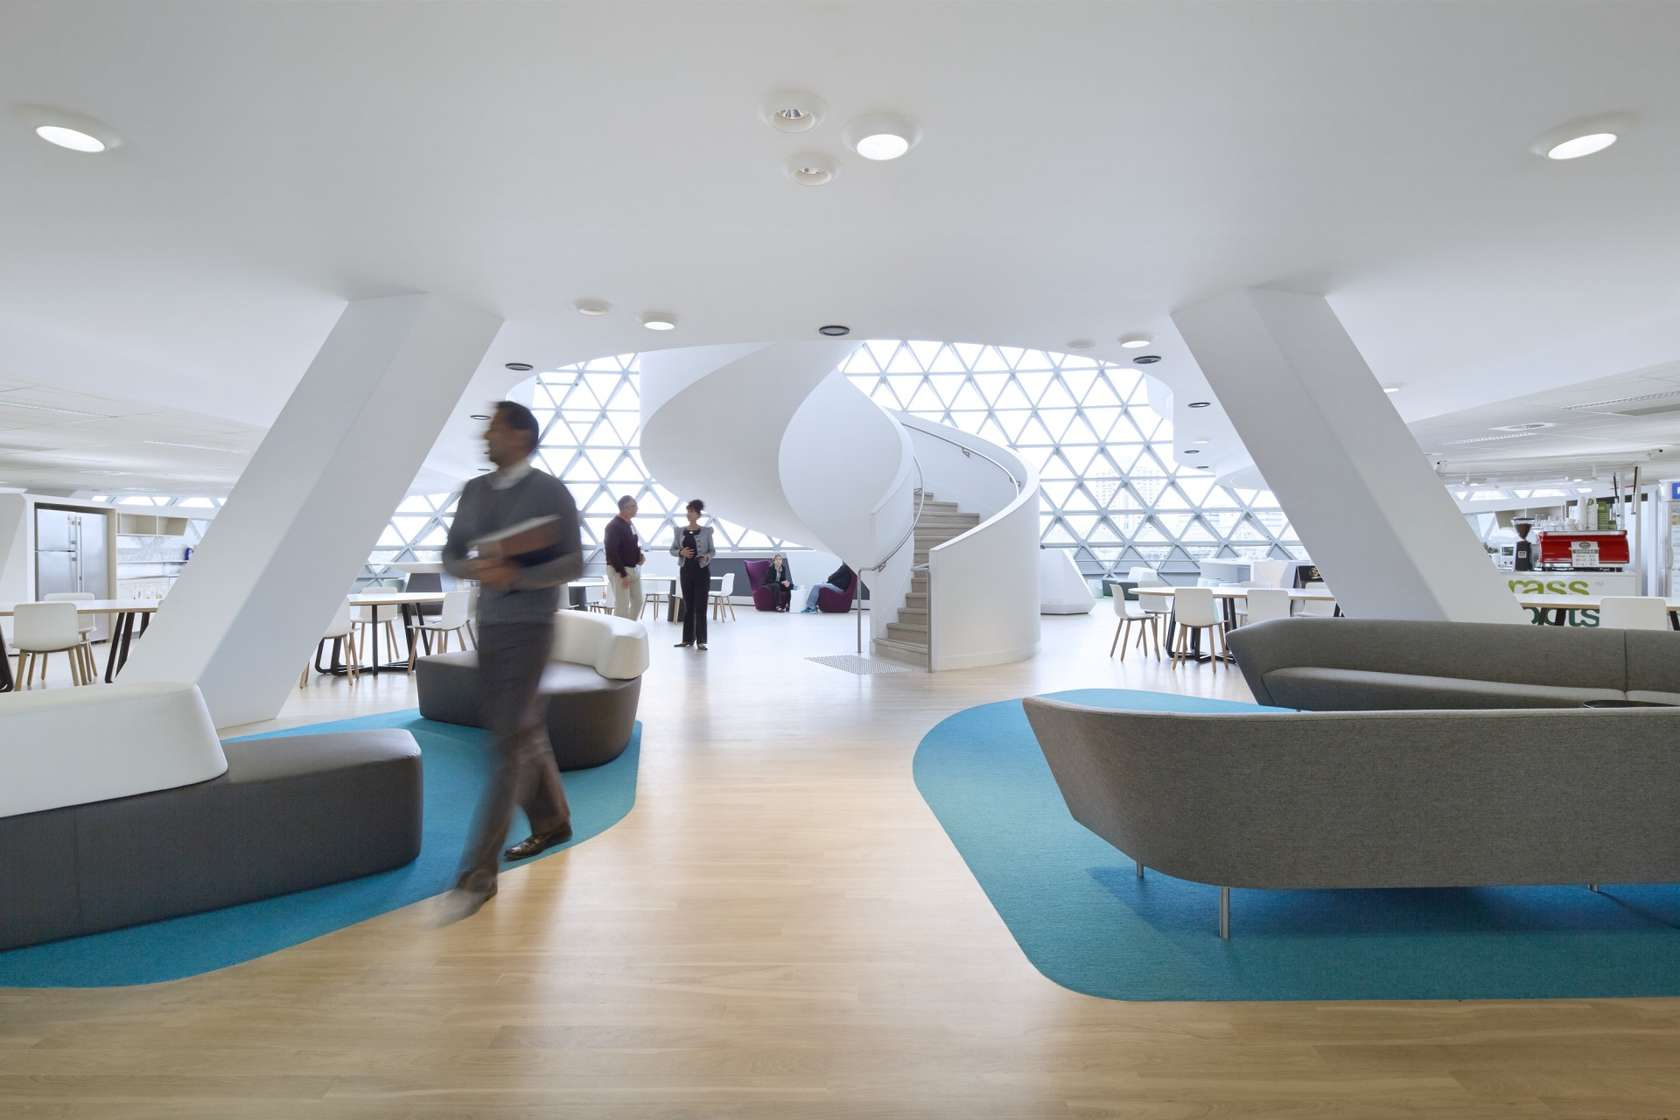 South australian health and medical research institute for Research interior decoration and design influences